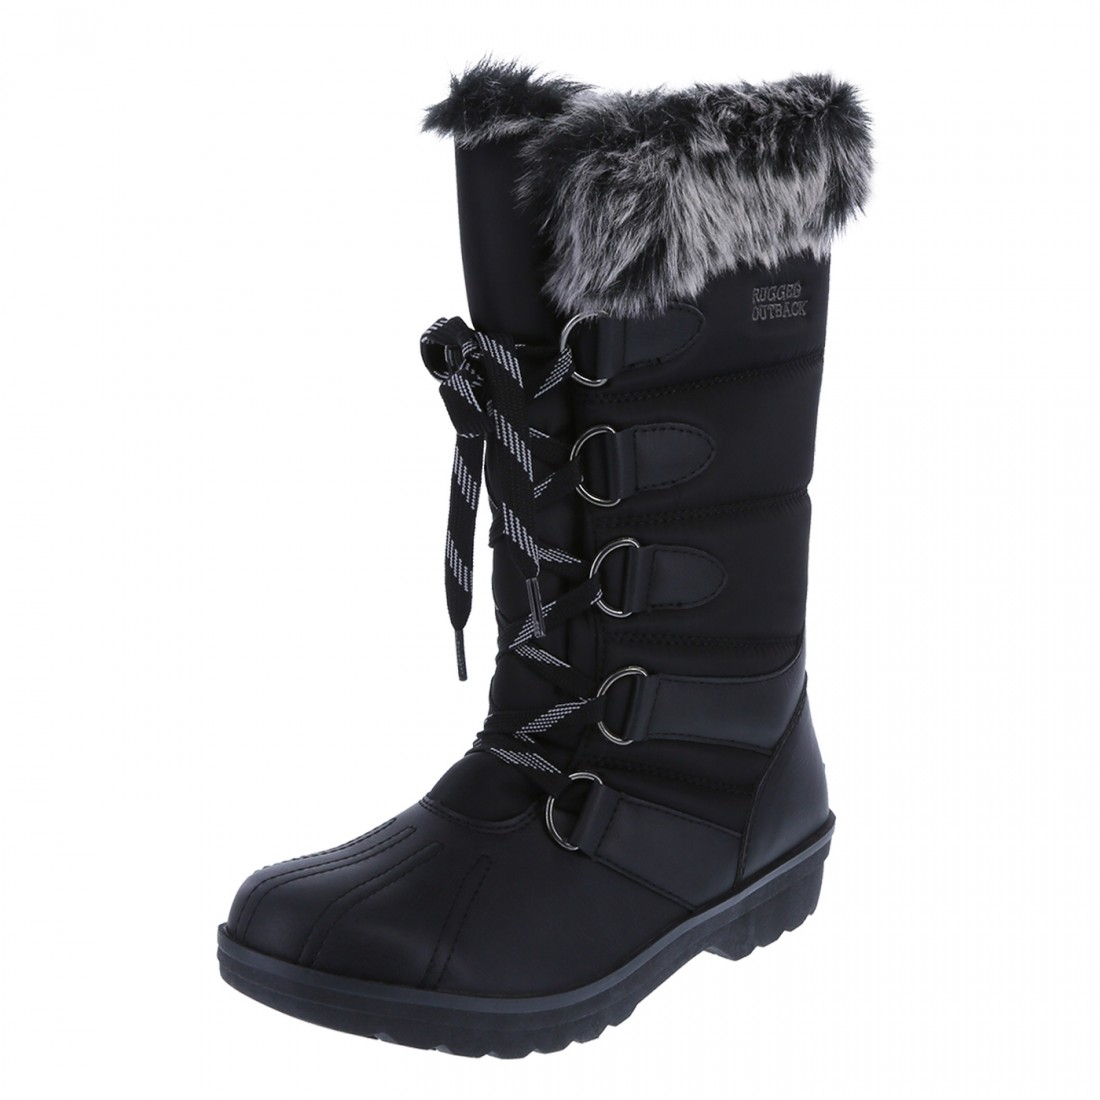 Getting Winter Ready + Roundup of Winter Boots From